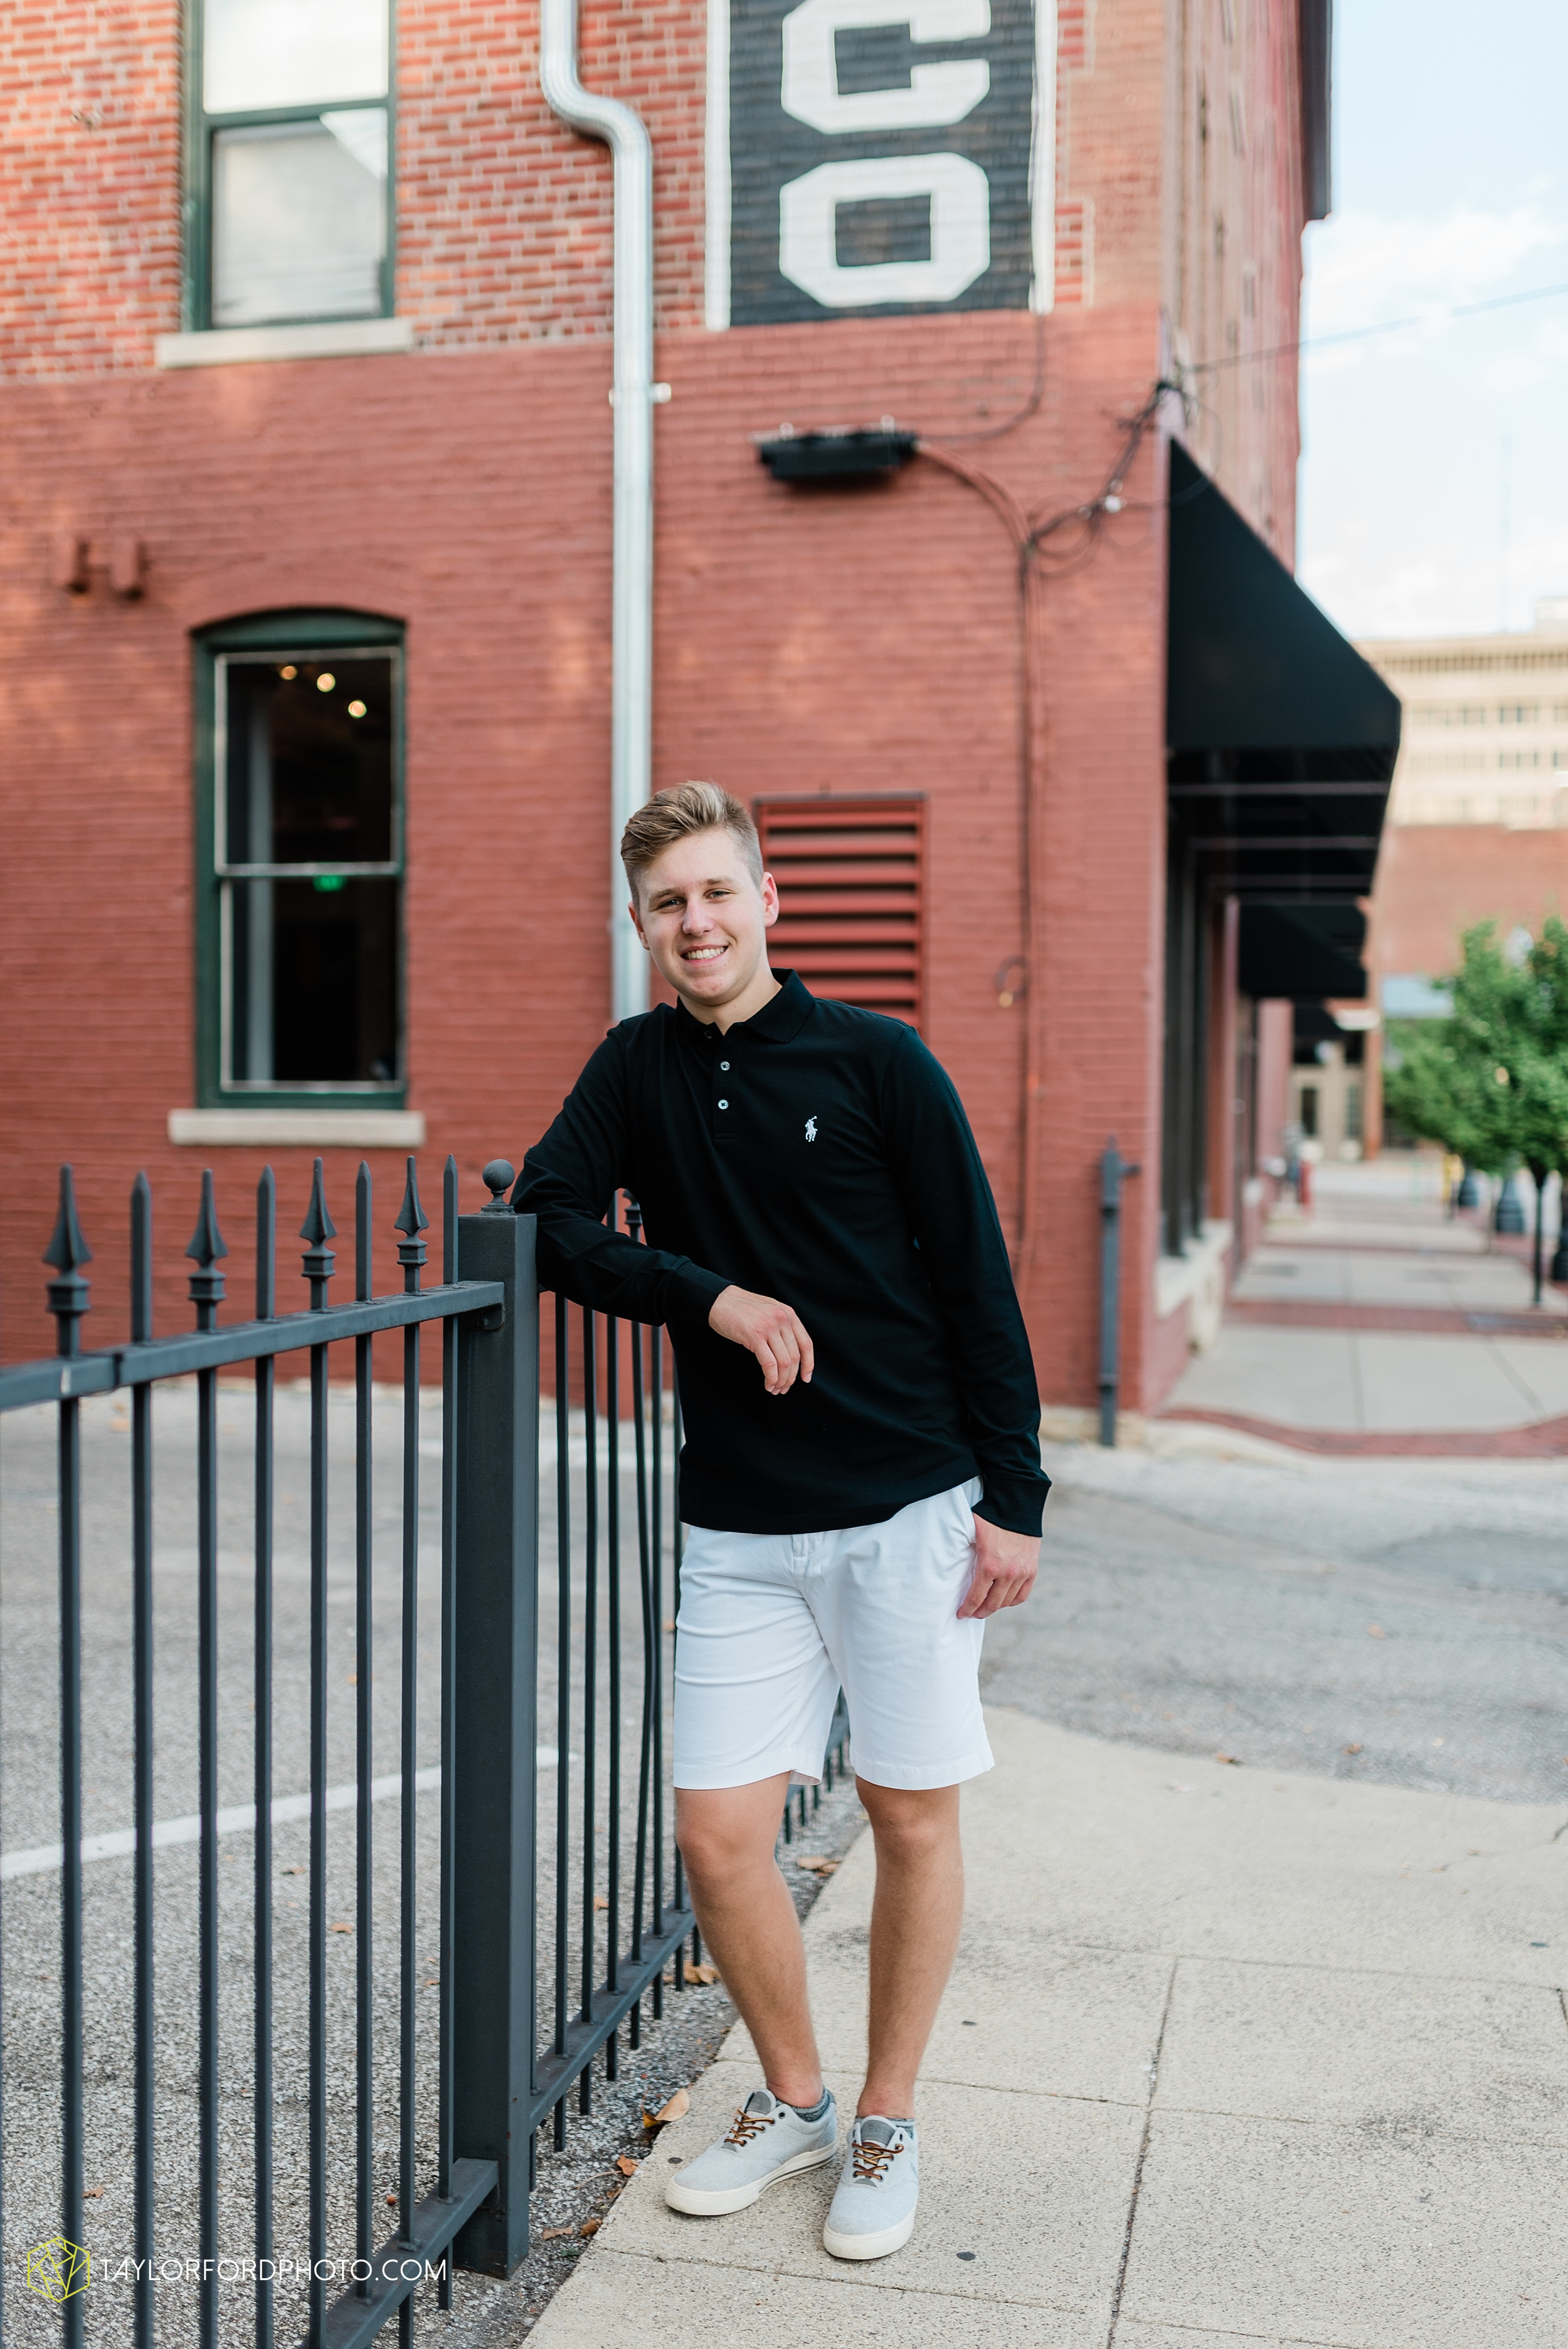 alex-duffus-fort-wayne-indiana-senior-caroll-high-school-chargers-photographer-taylor-ford-photography_0477.jpg